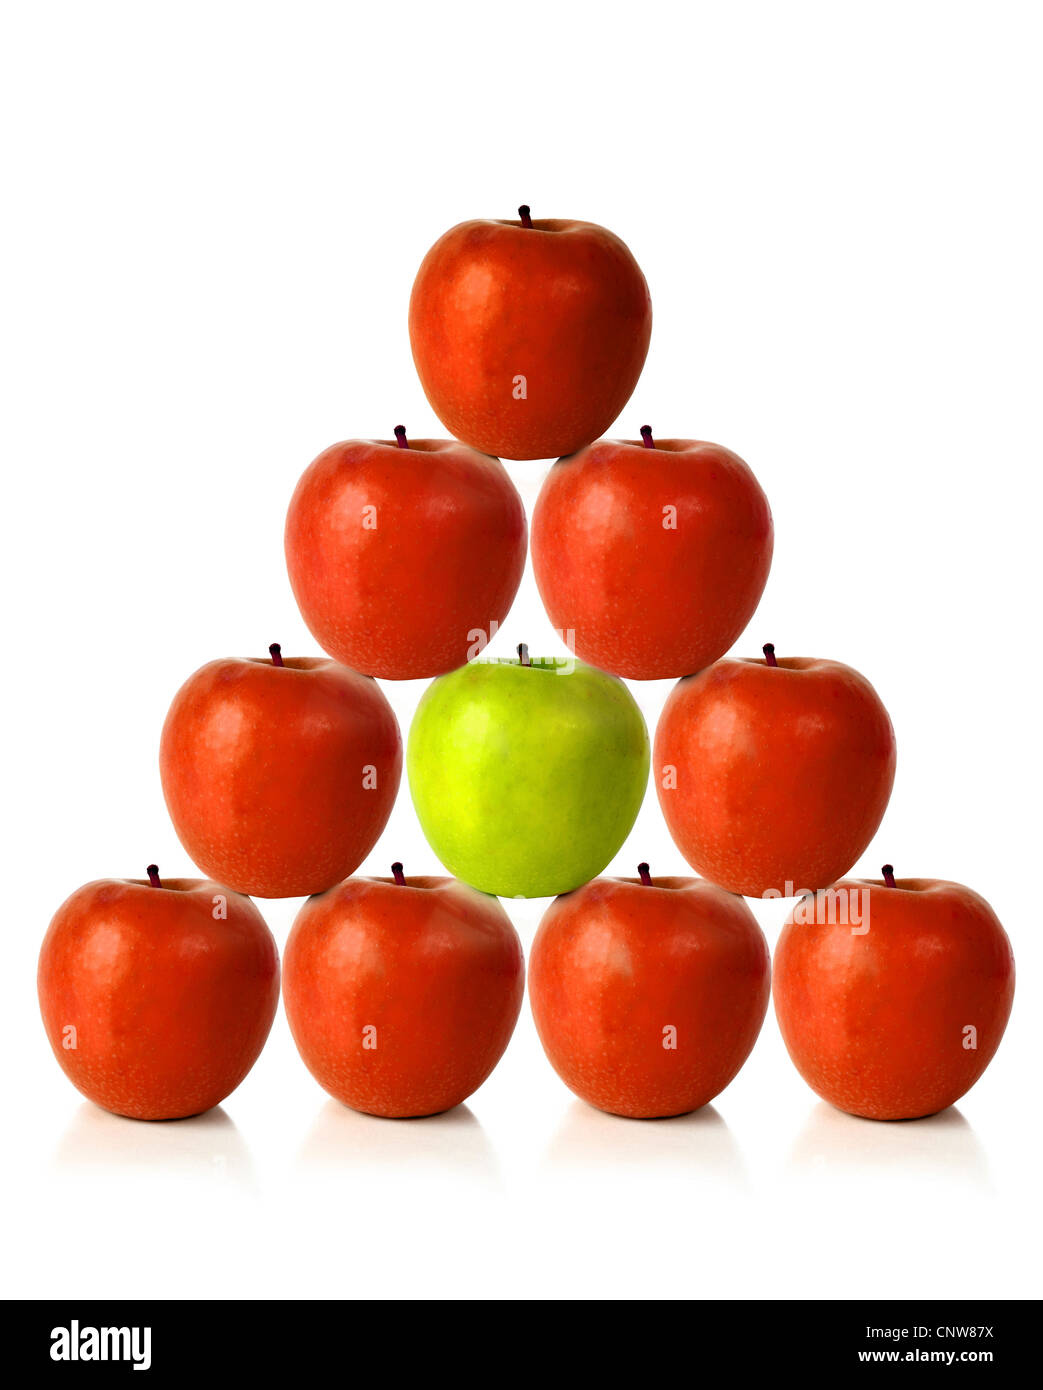 red apples on a pyramid shape with one green apple in the middle, be different Stock Photo